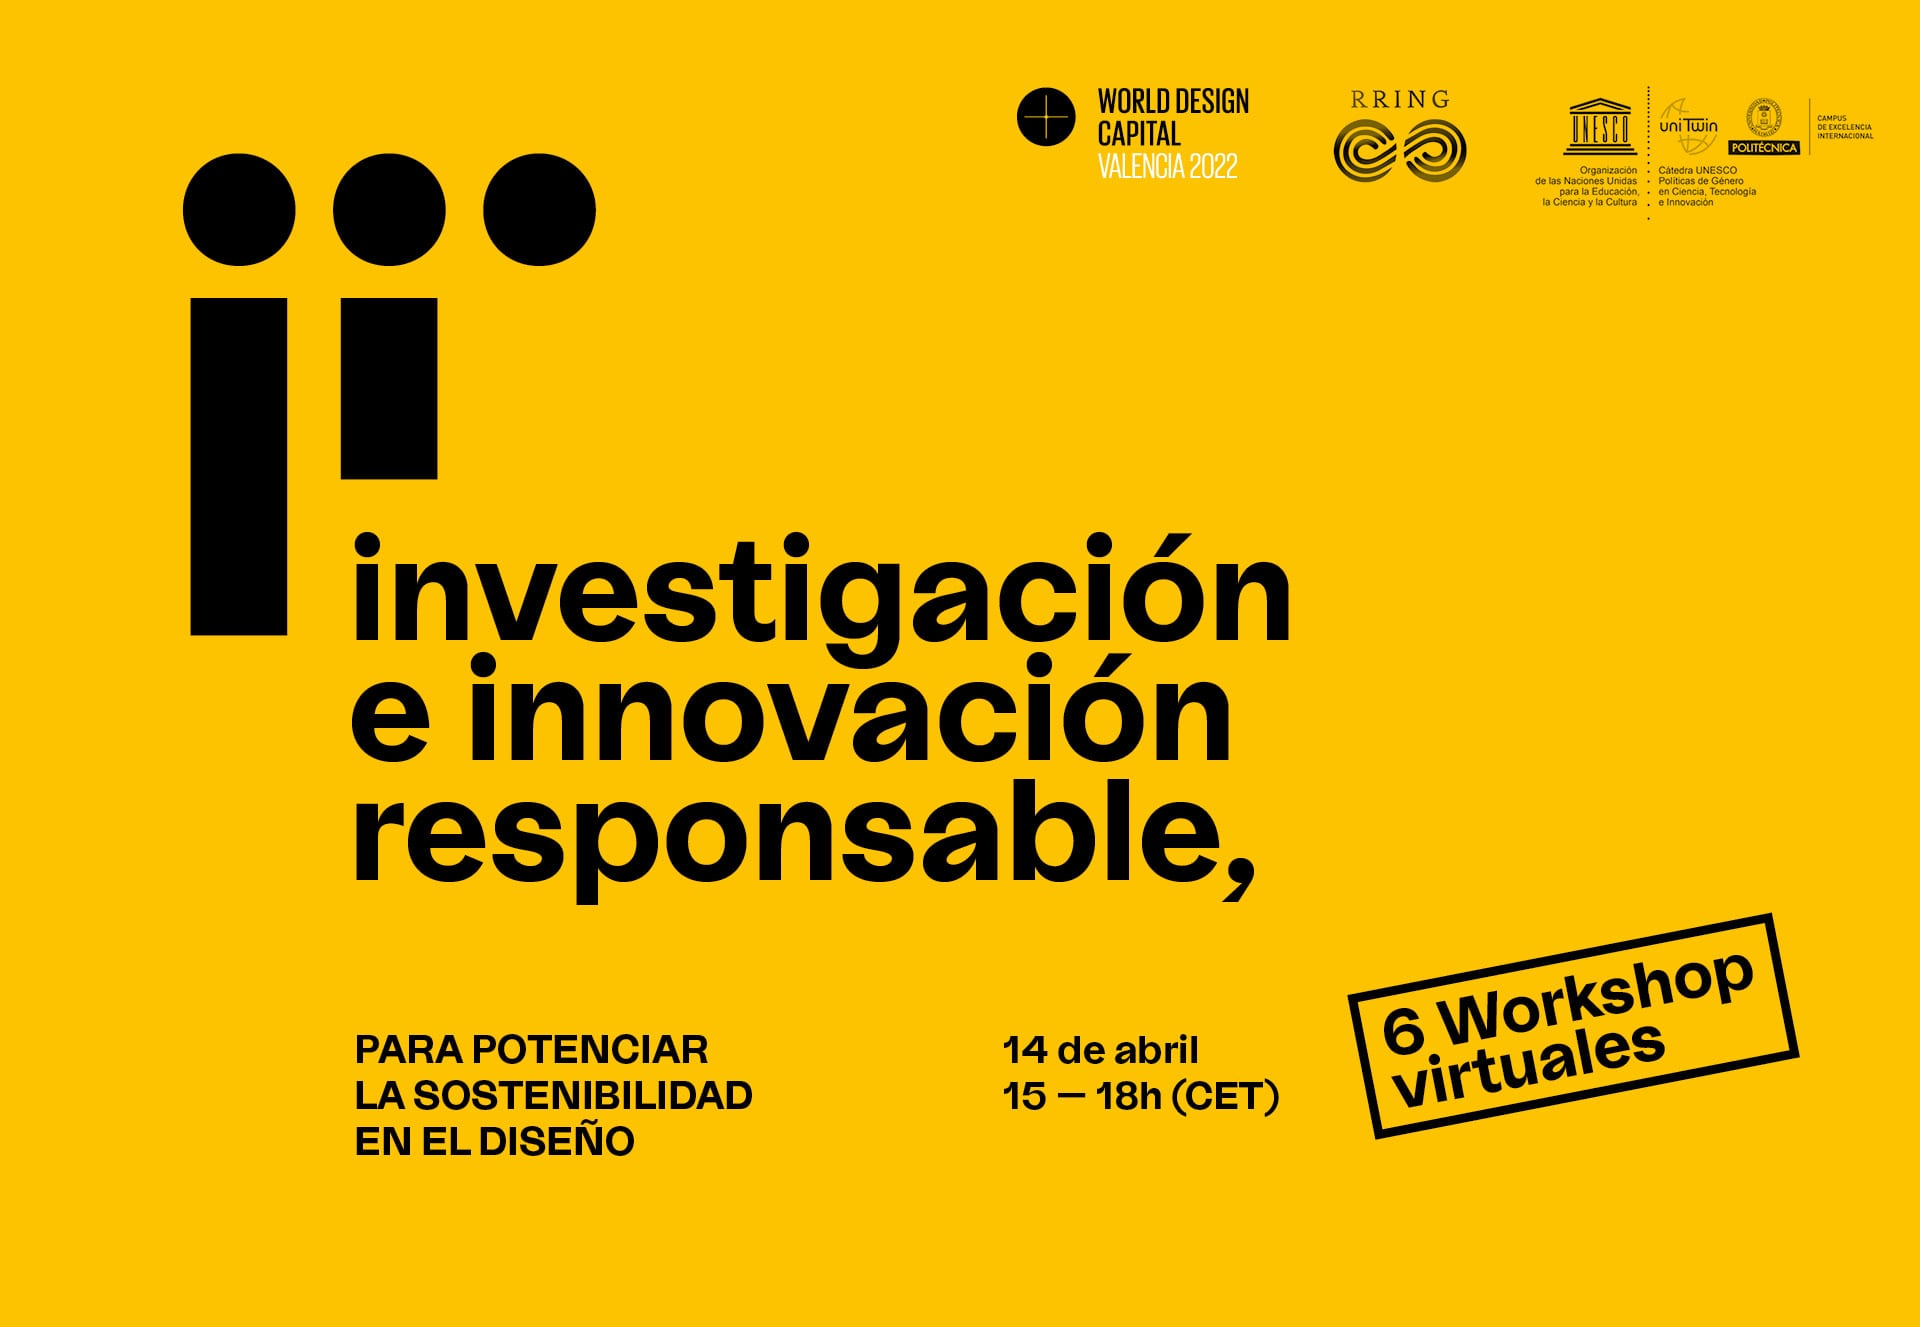 Virtual workshops: 'Responsible Research and Innovation, to support sustainable design'